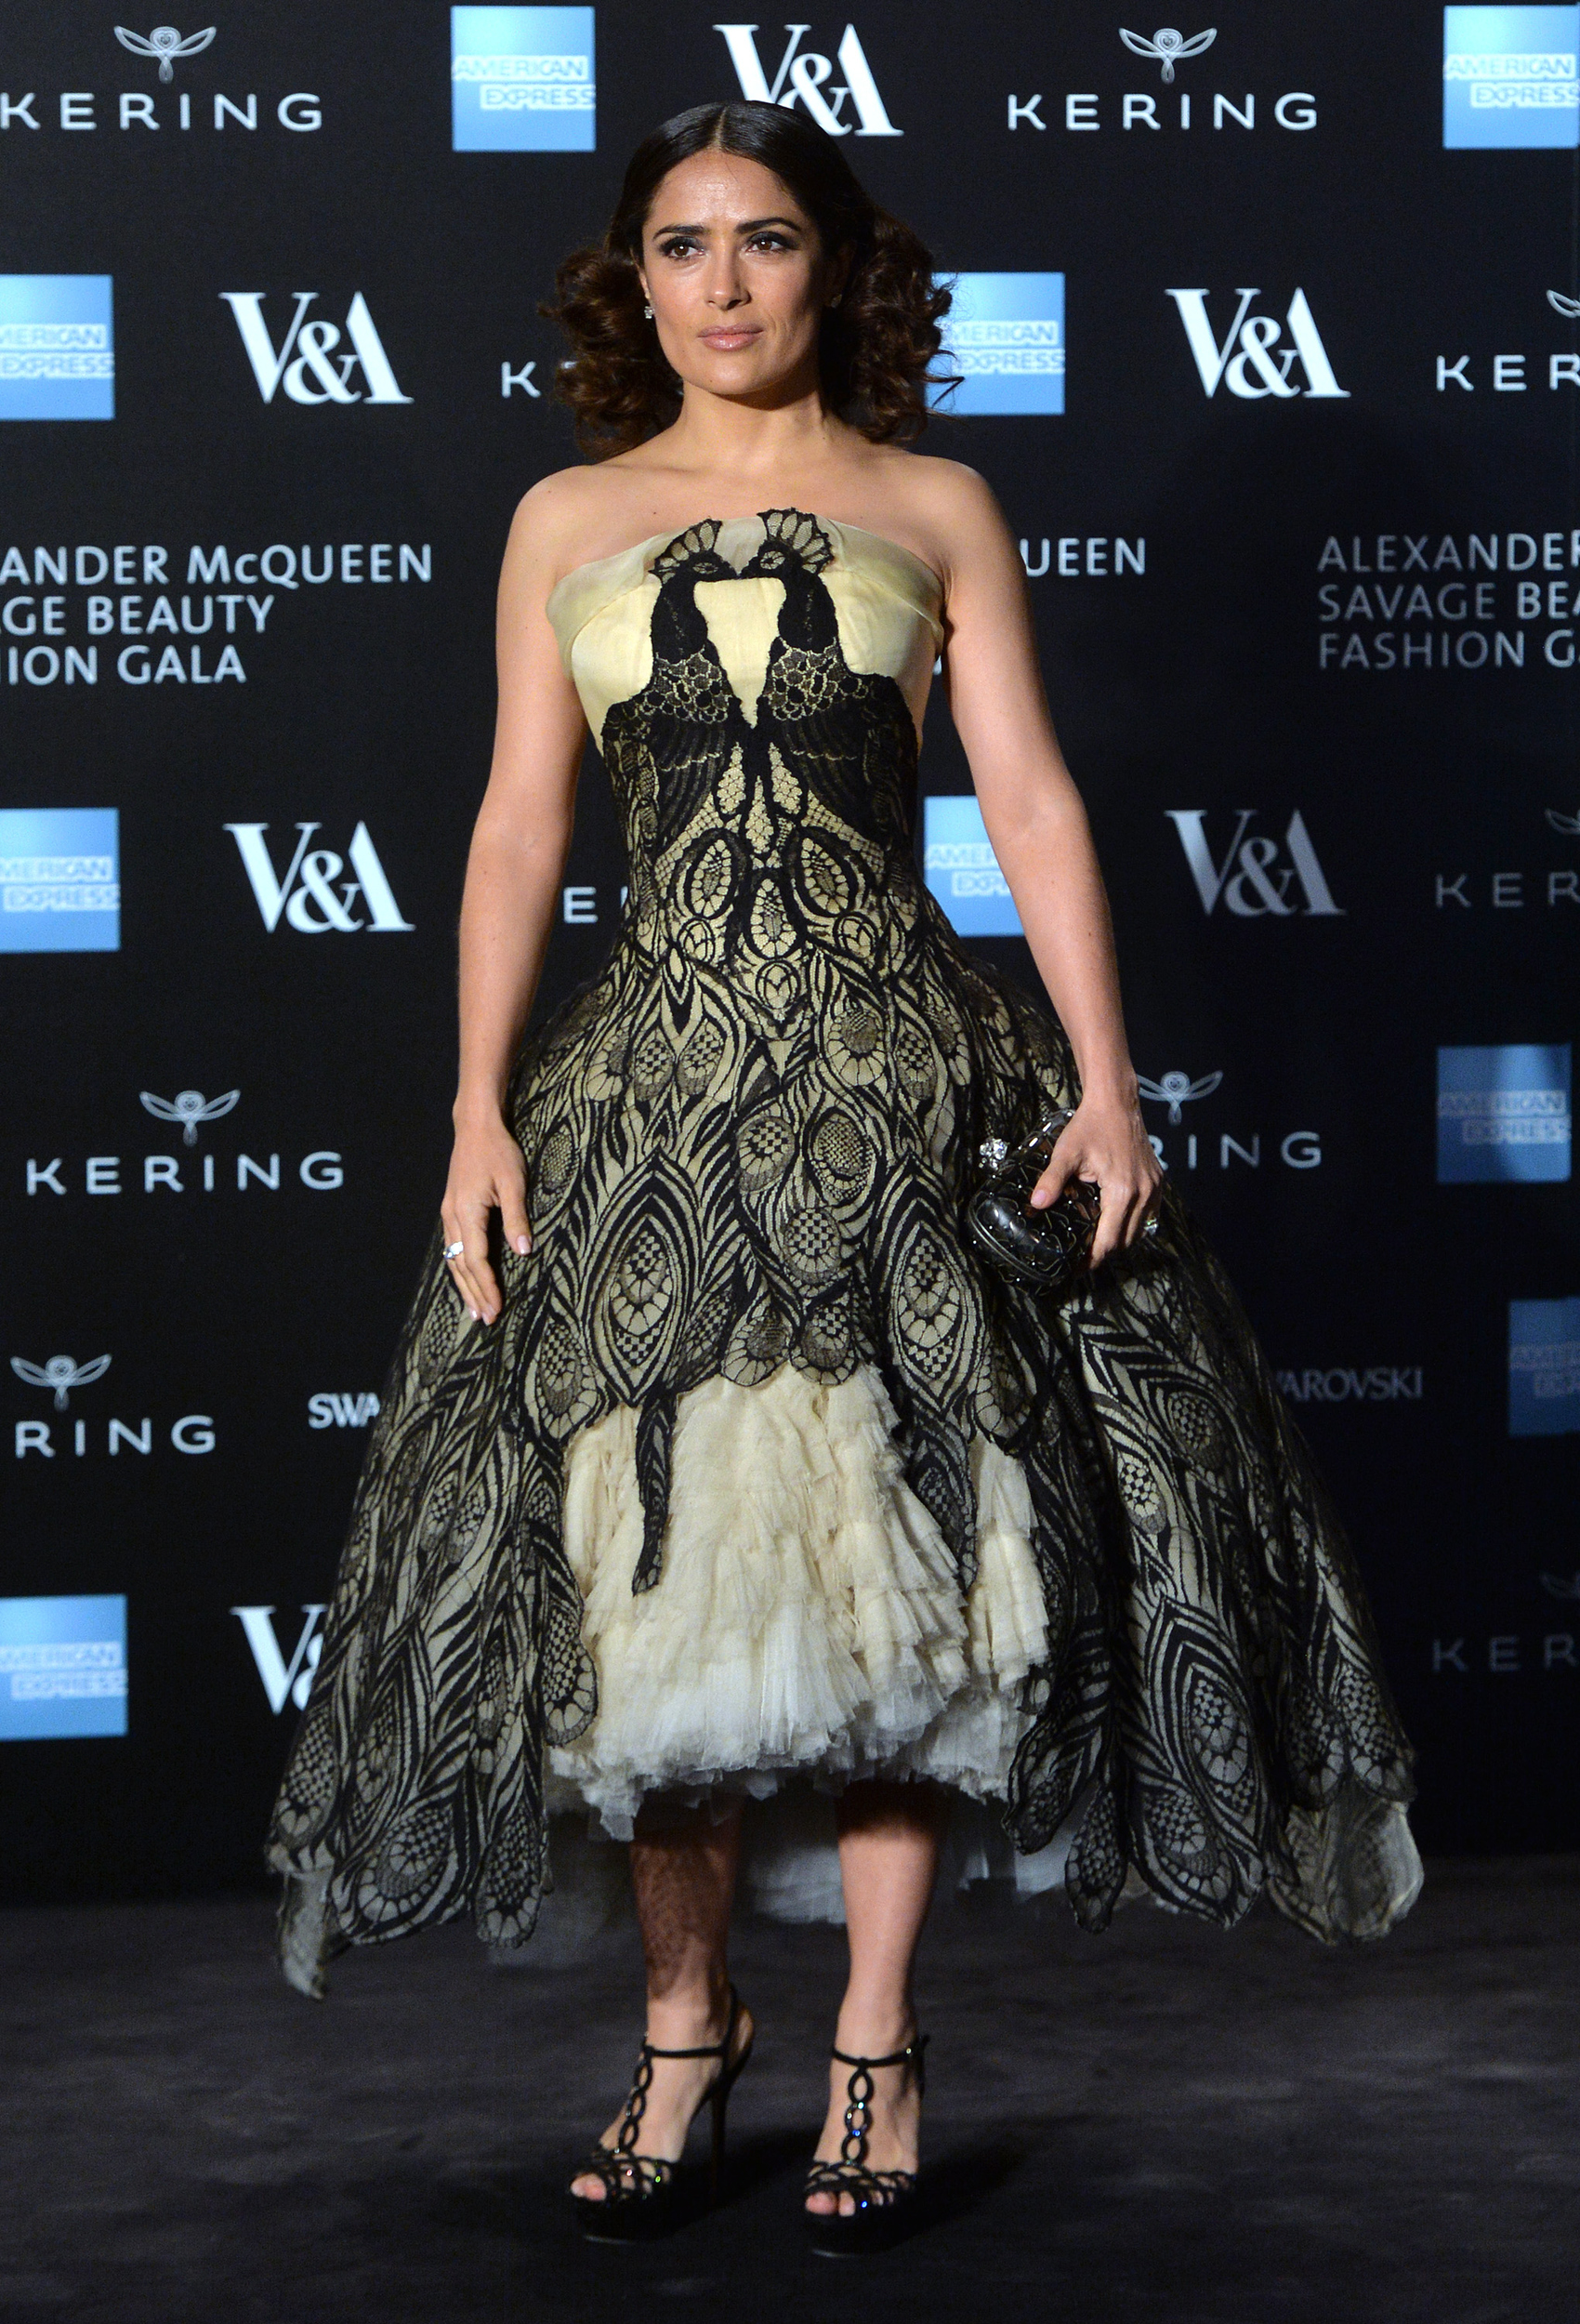 alexander-mcqueen-savage-beauty-private-view-red-carpet-arri-1